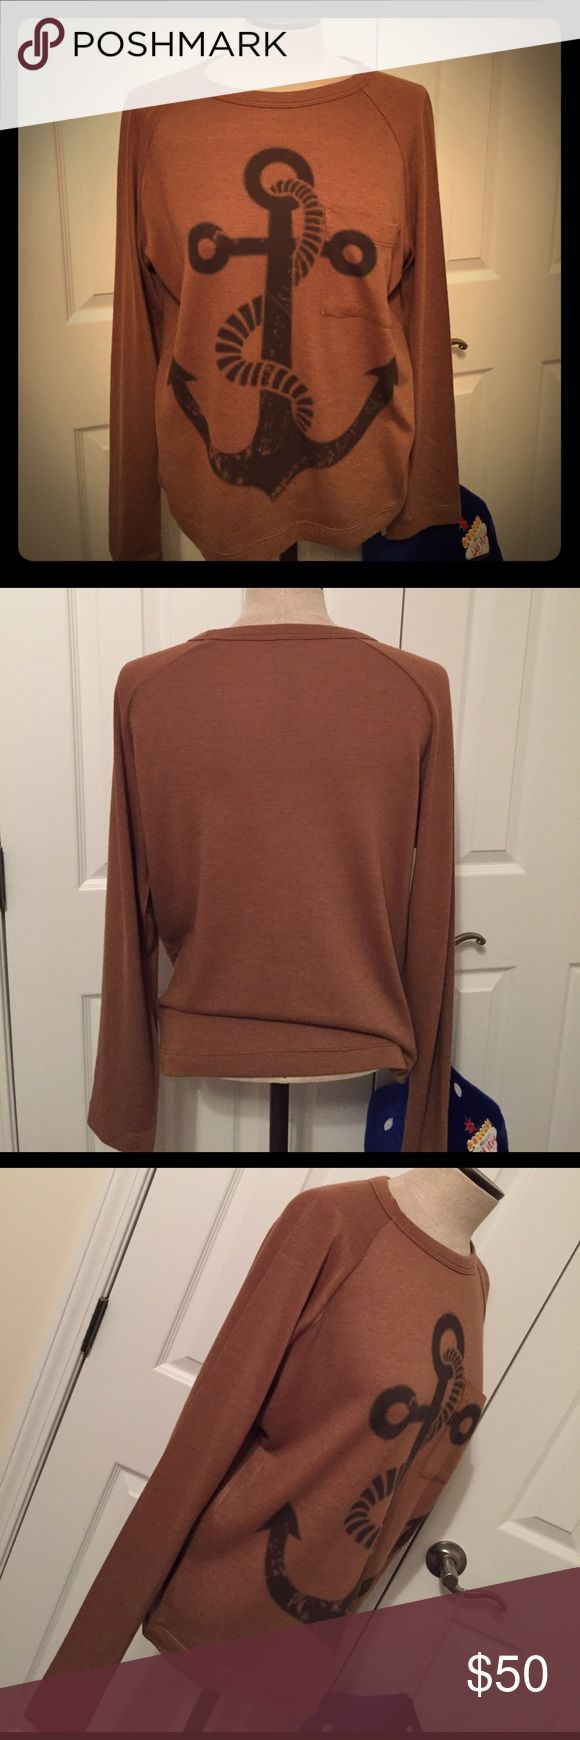 GO COUTURE Brown Anchor Sweater Awesome sweater, like new condition, only worn once! Very soft, it has in front pocket. Make offers! Go Couture Sweaters Crew & Scoop Necks